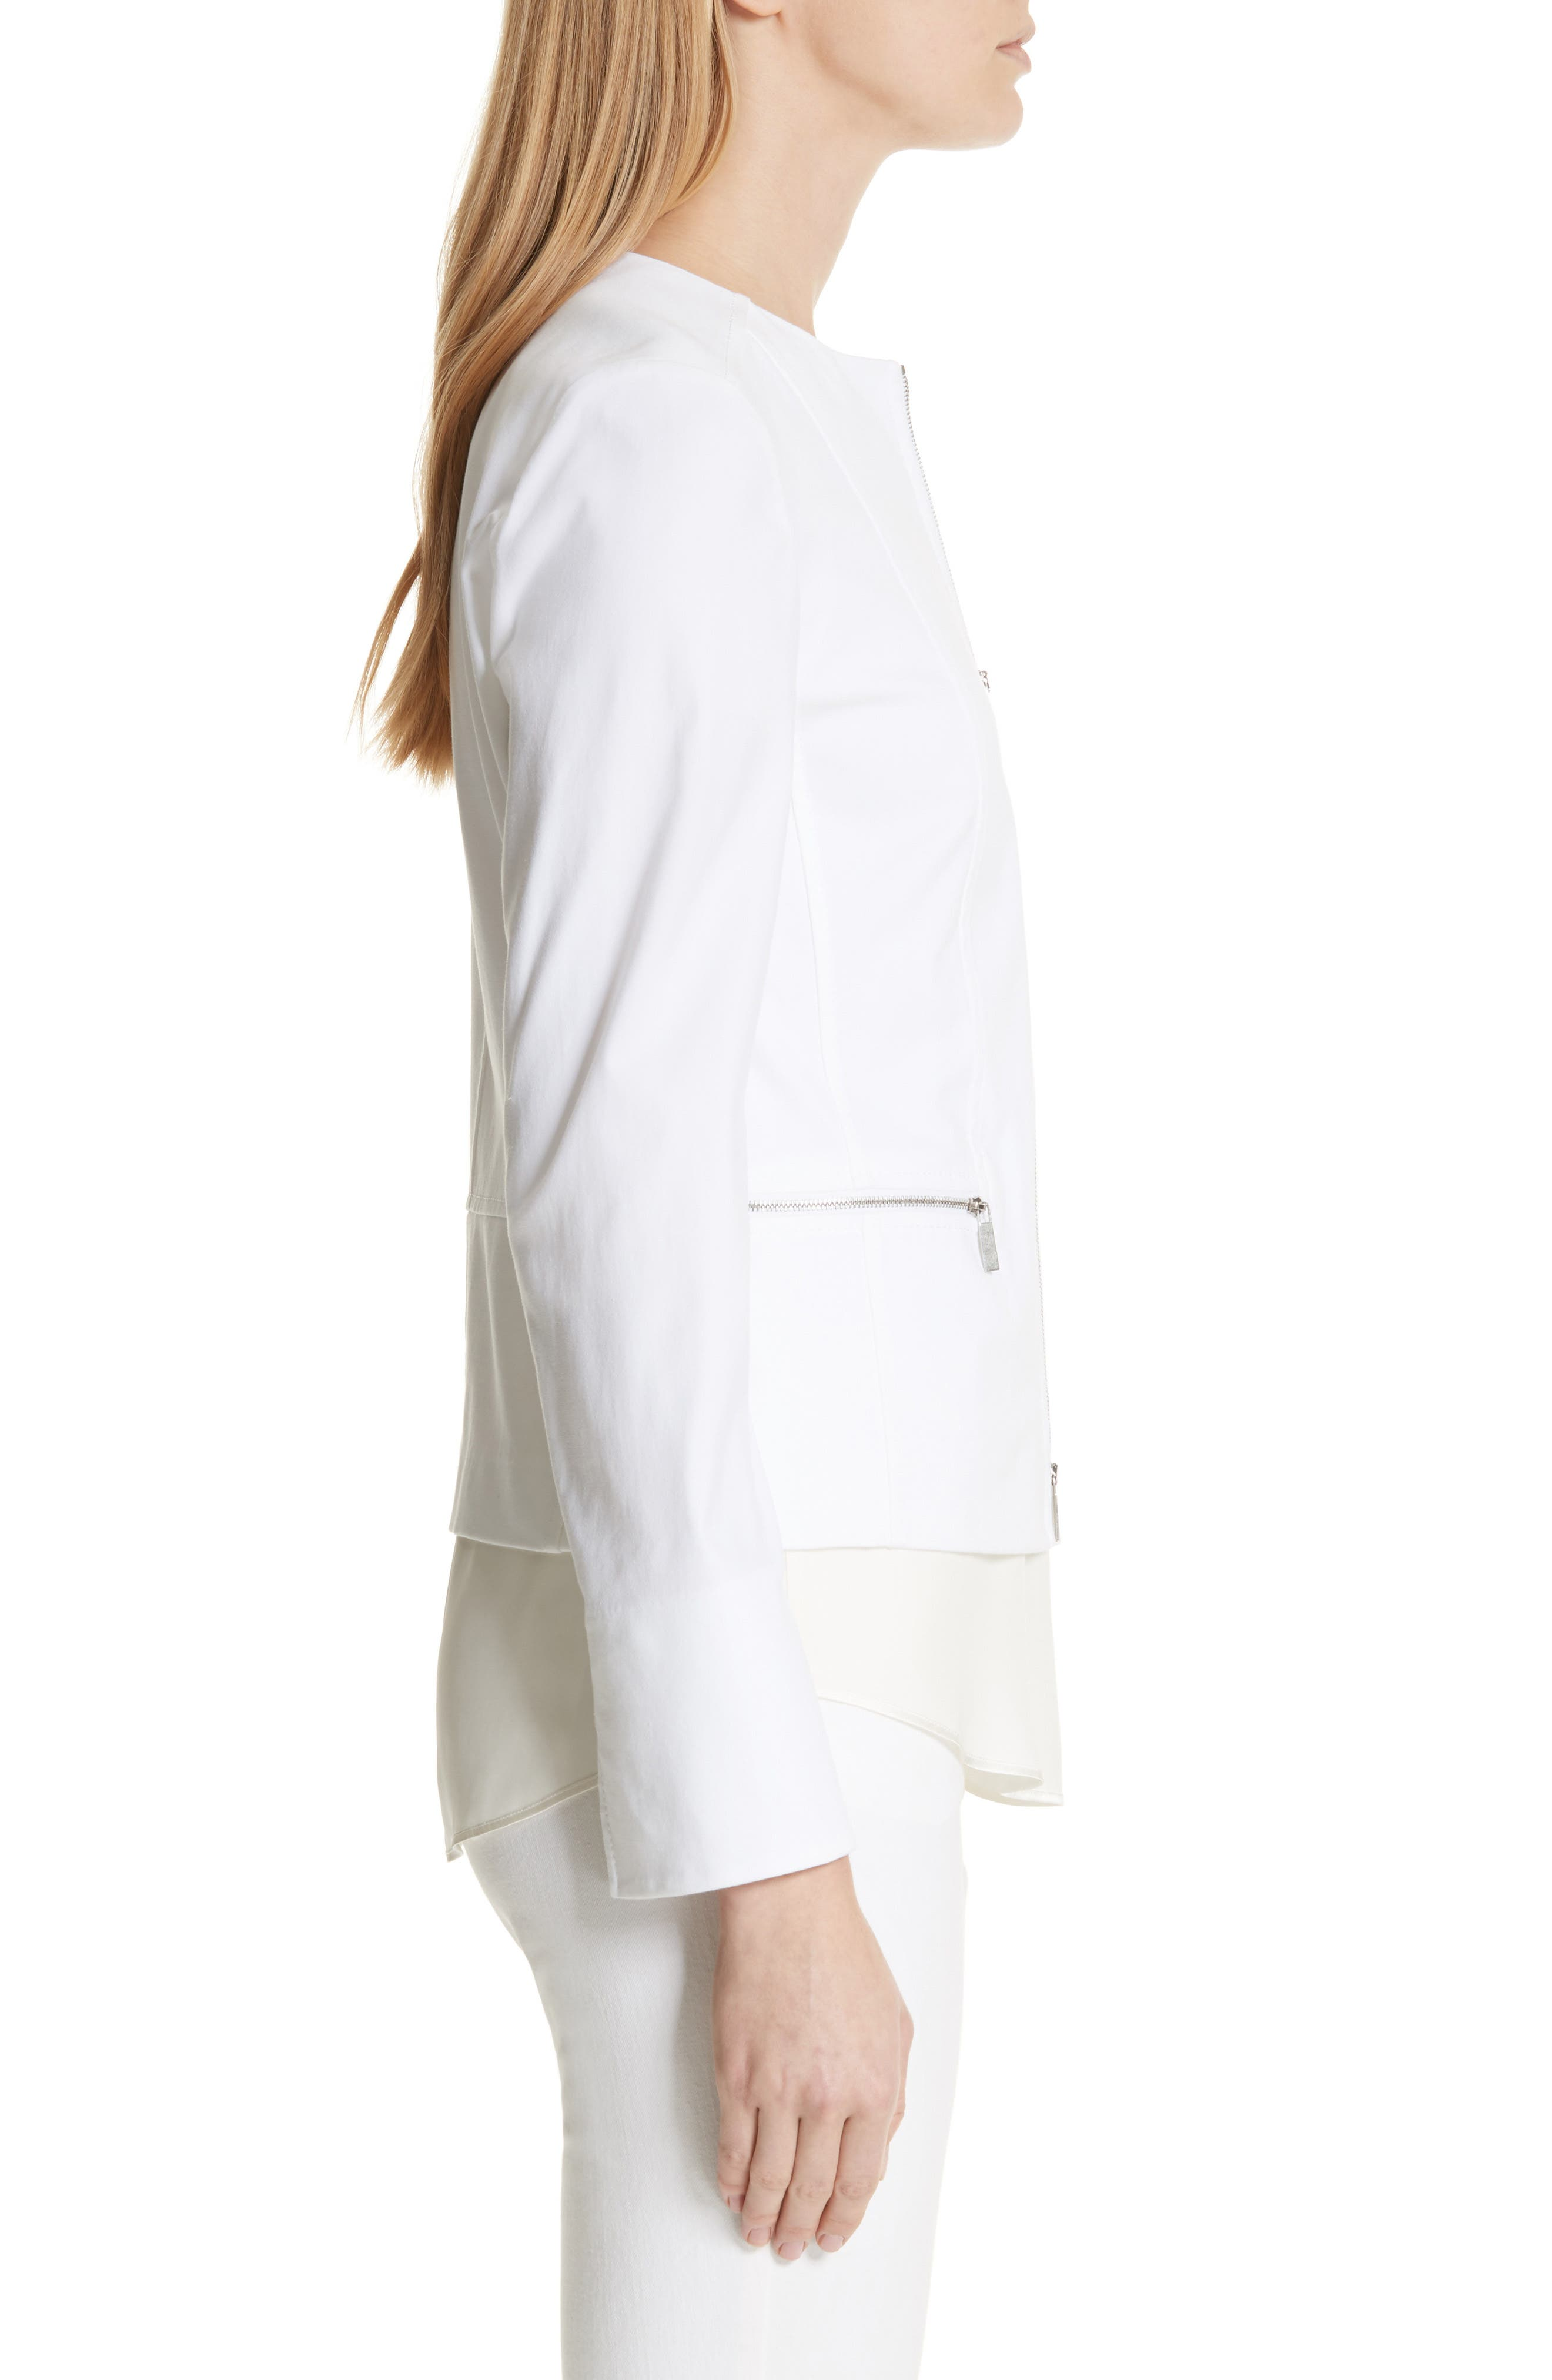 Noelle Catalina Stretch Jacket,                             Alternate thumbnail 3, color,                             White